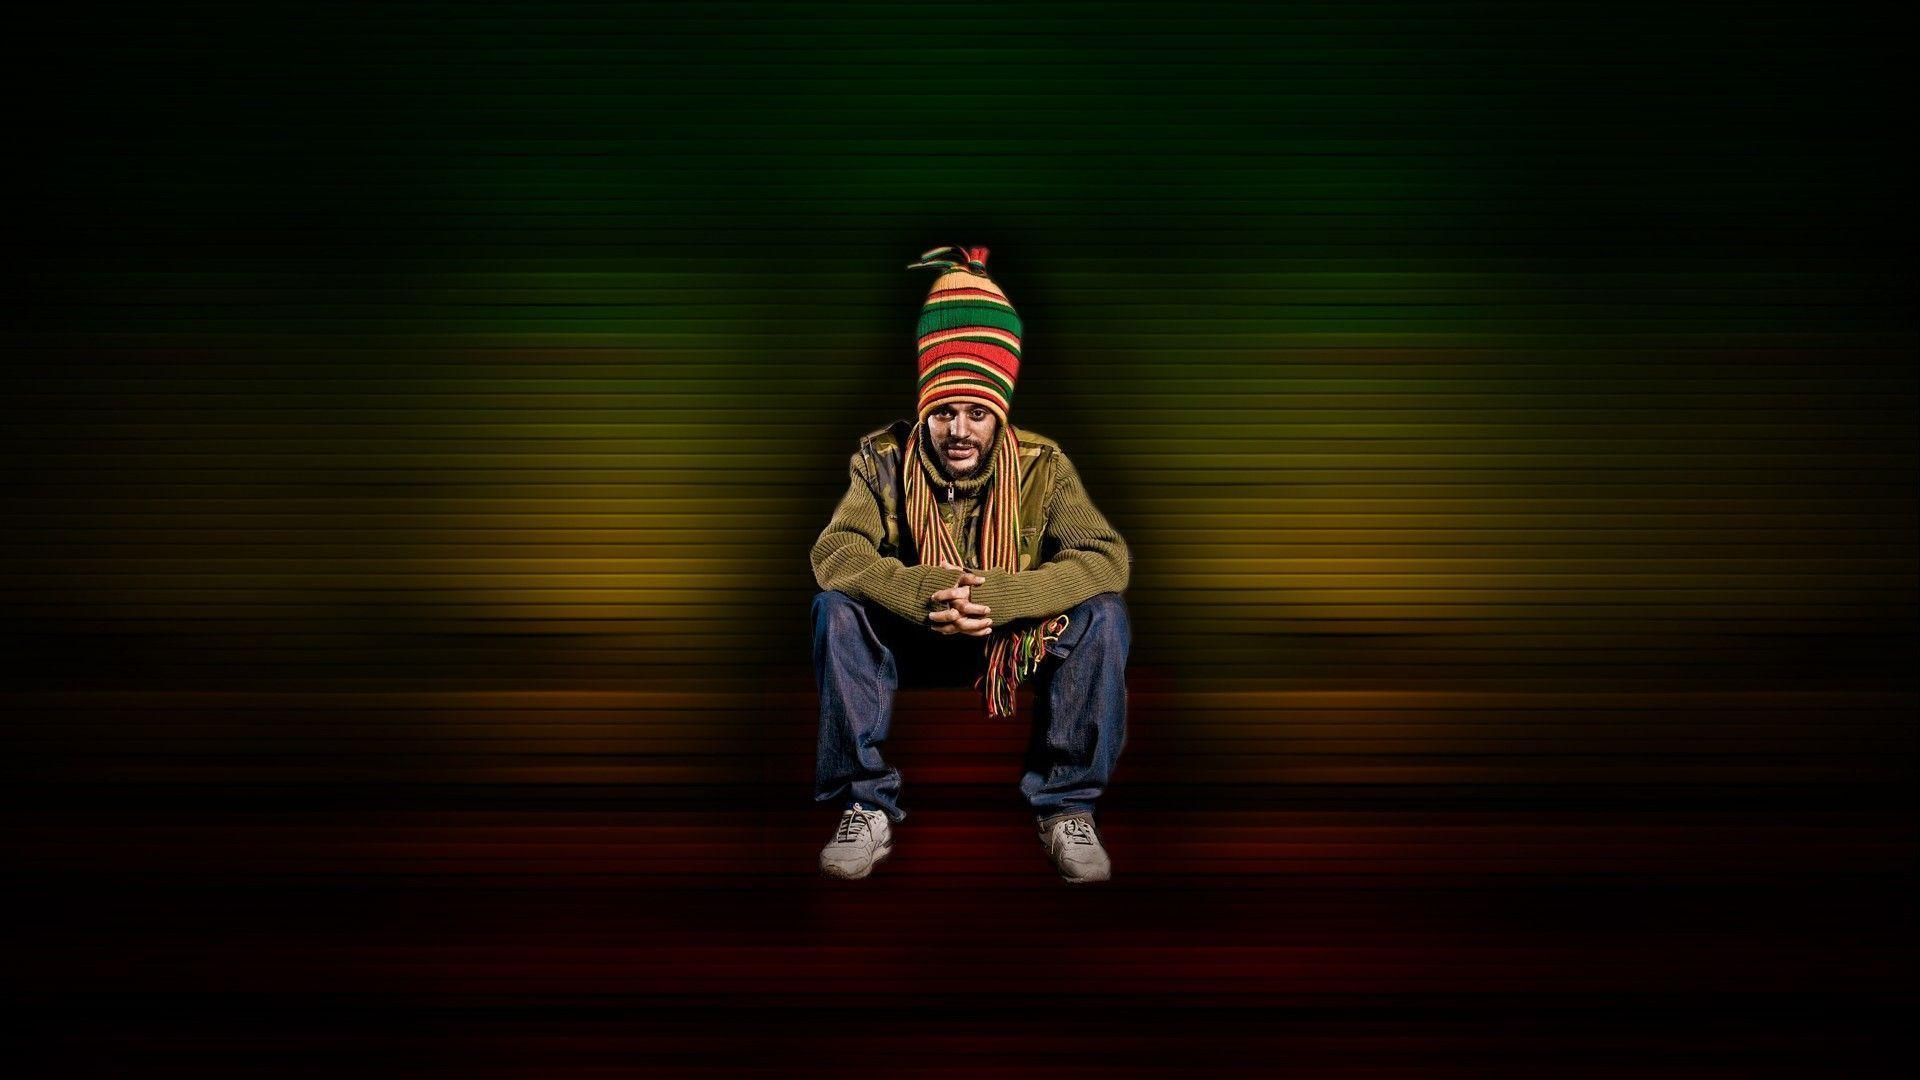 Cute Wallpapers Of All The Animals Reggae Wallpapers Wallpaper Cave